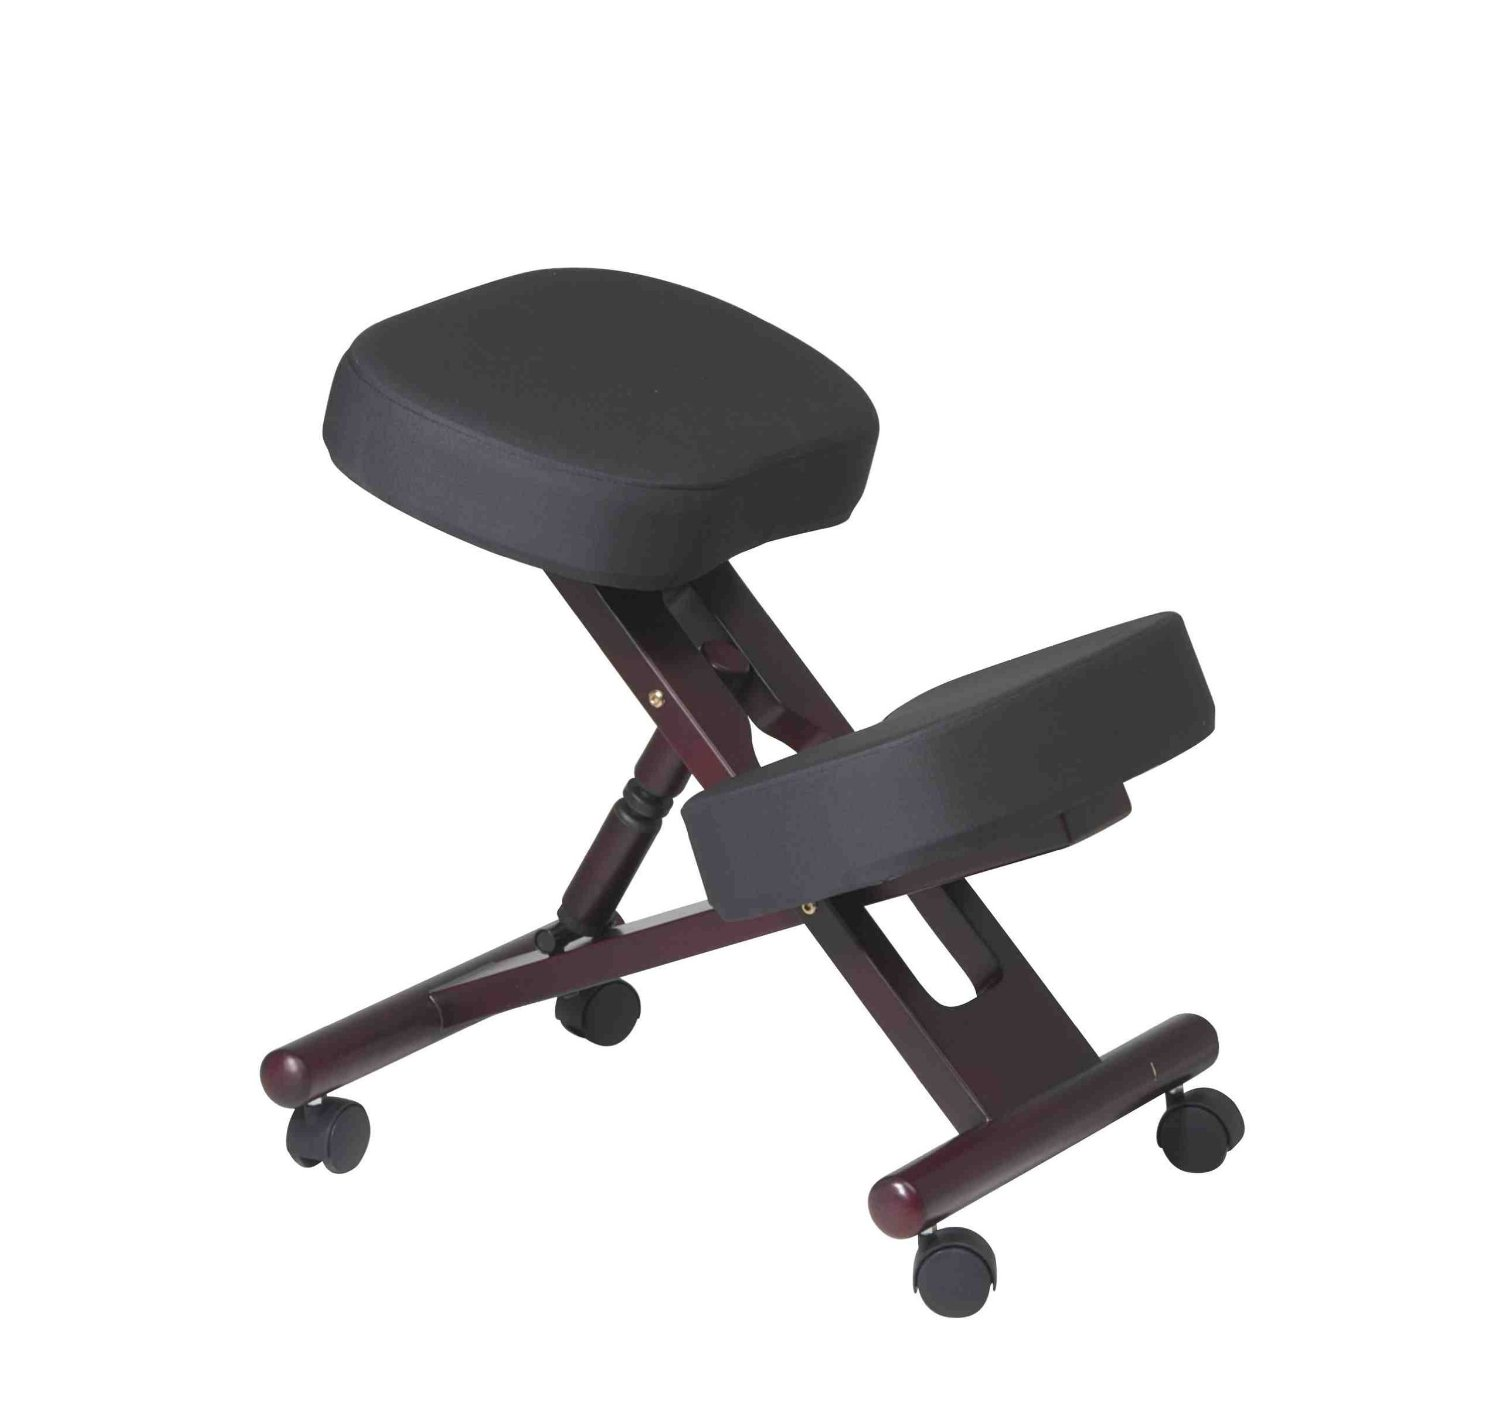 ergonomic chair reviews reddit acrylic dining chairs nz whats the best knee read our top 5 report